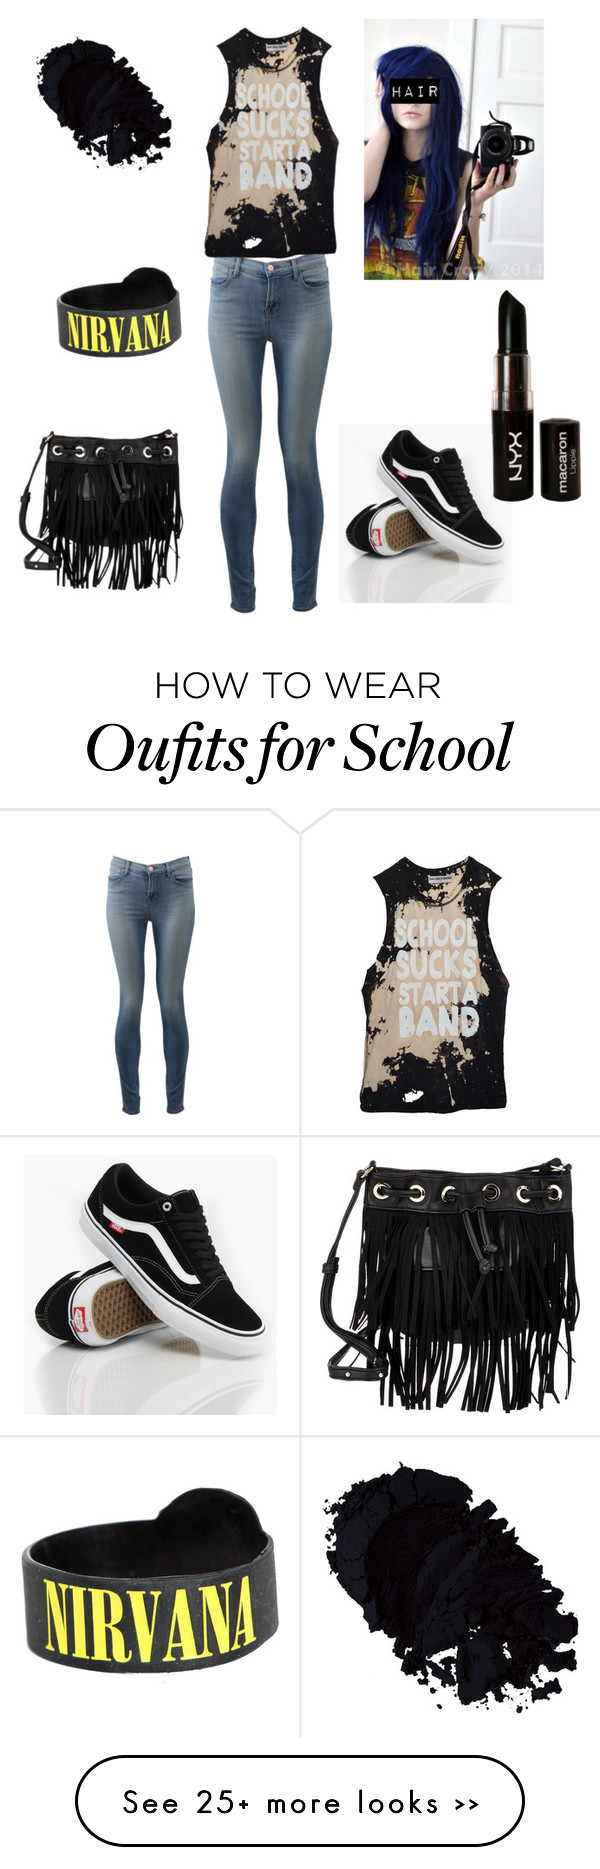 """""""School sucks start a band✌️"""" by musicislife166 on Polyvore"""